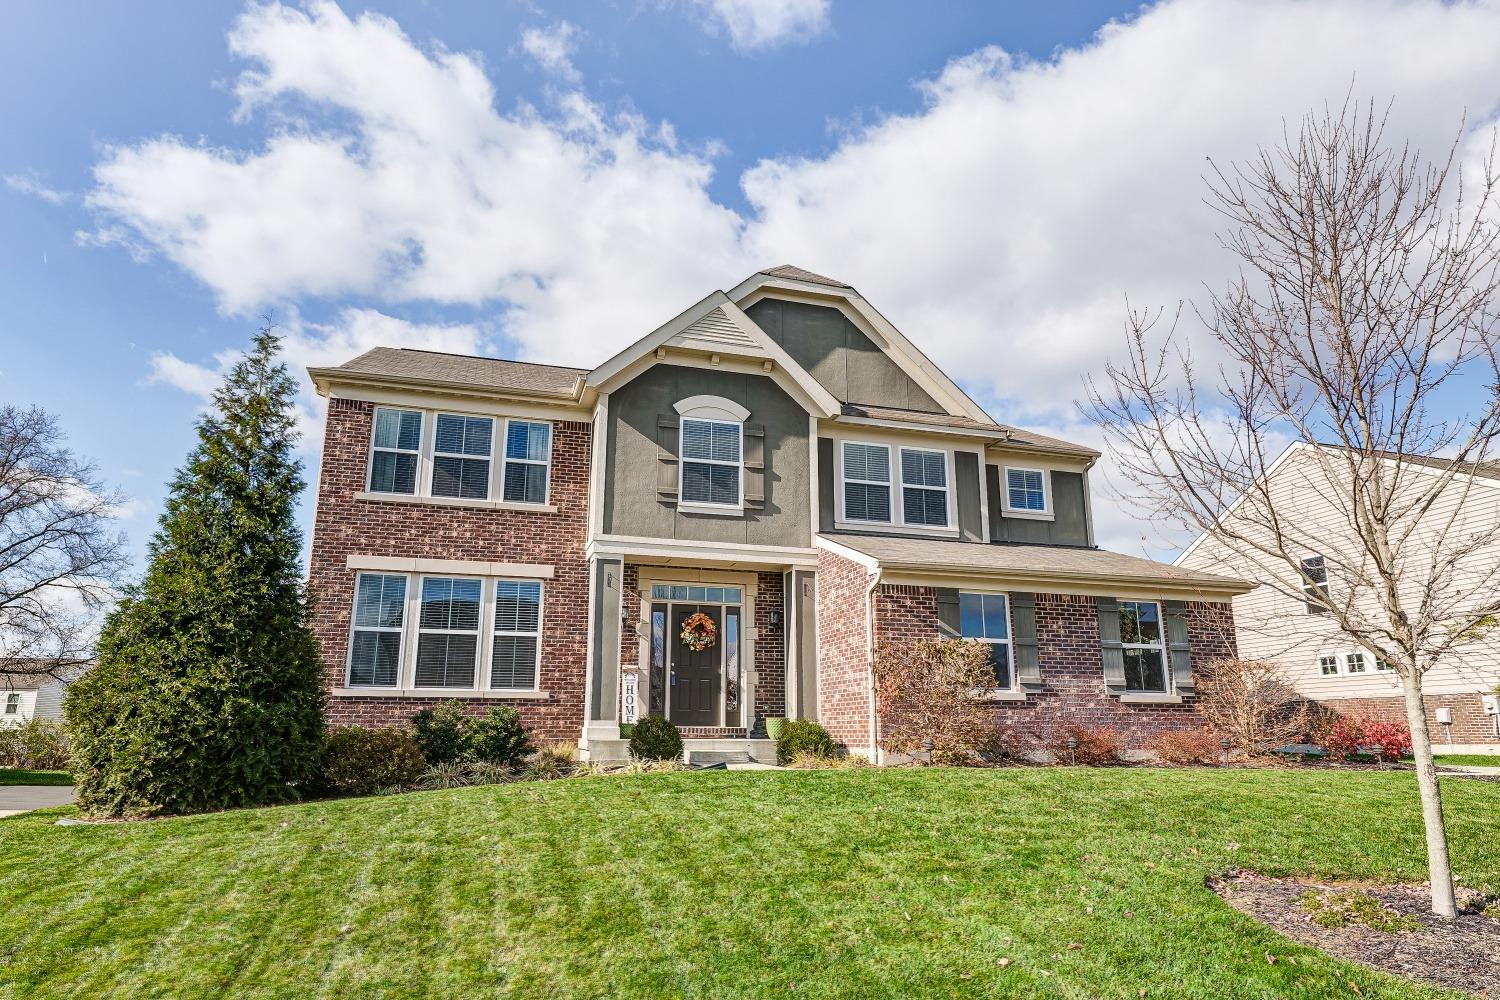 Property for sale at 7161 Birkdale Drive, Hamilton Twp,  Ohio 45039